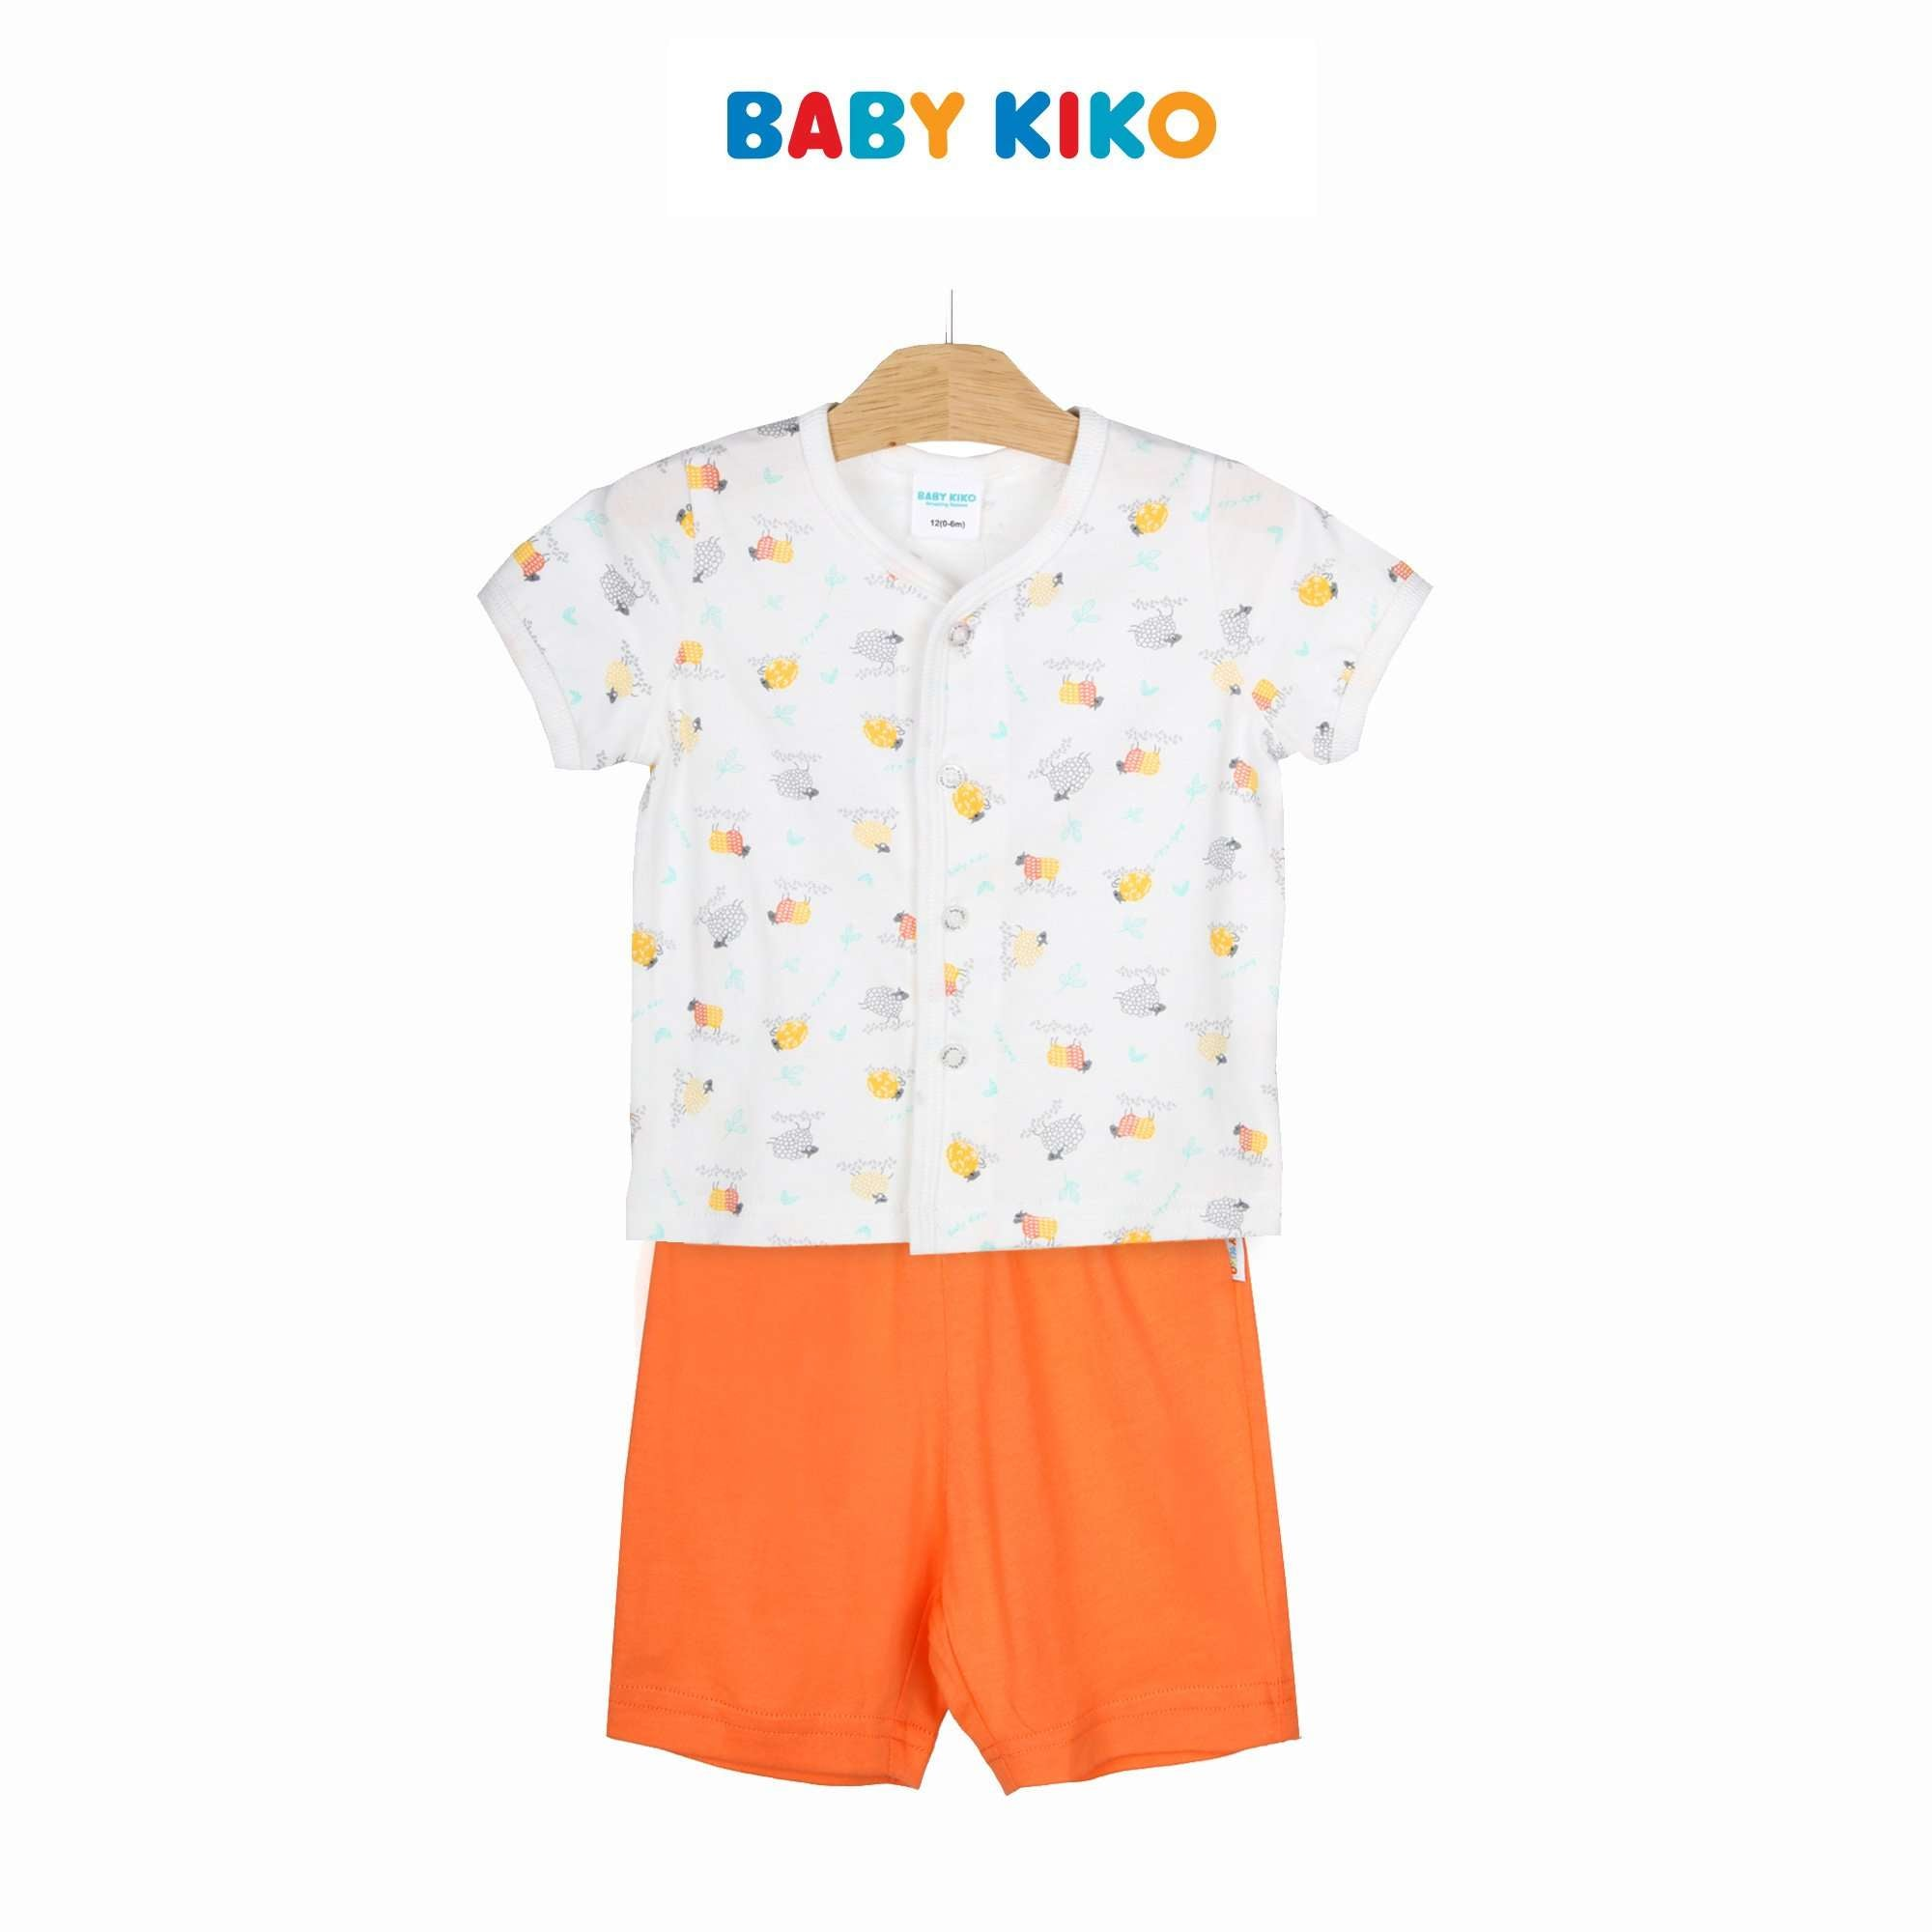 Baby KIKO Baby Boy Short Sleeve Bermuda Suit - Orange 320133-411 : Buy Baby KIKO online at CMG.MY